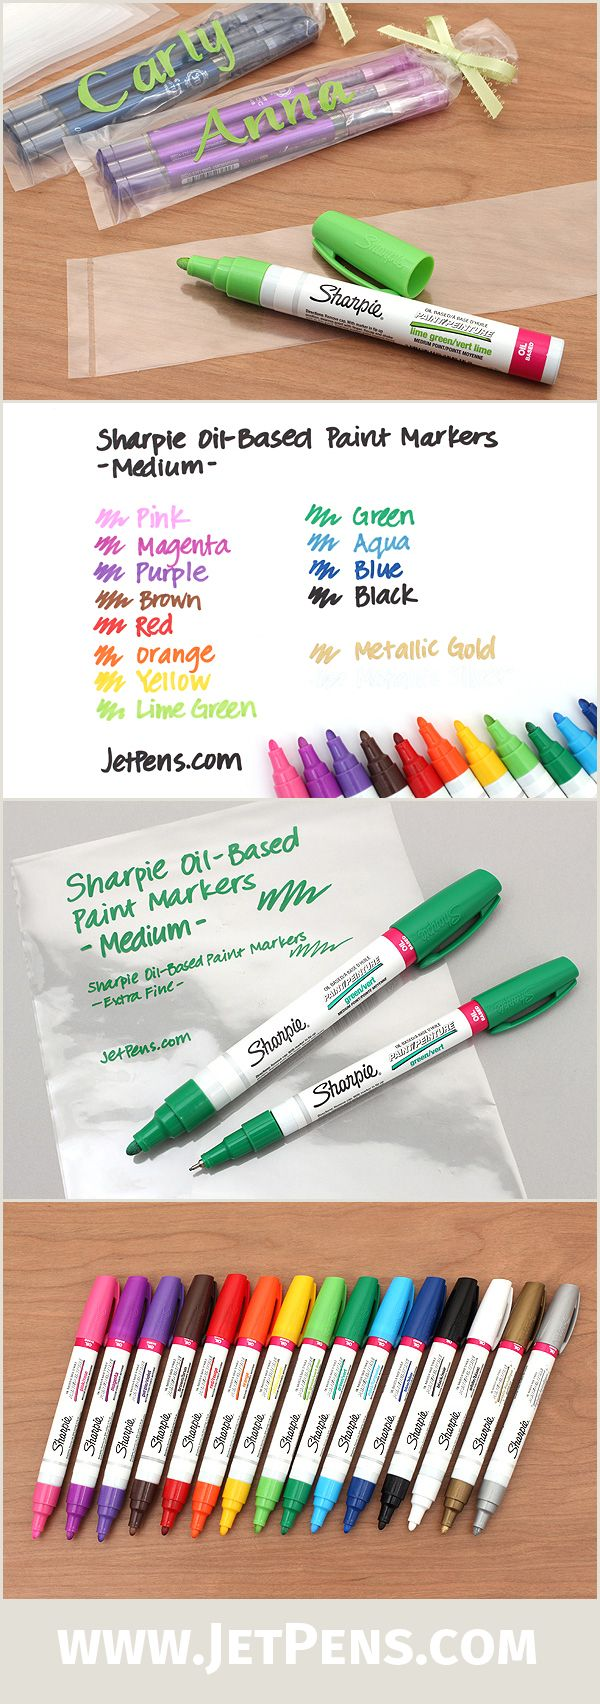 Great for writing on almost any nonporous surface, the Sharpie Oil-Based Paint Markers contain a thick, paint-based ink that dries with a glossy and opaque appearance.